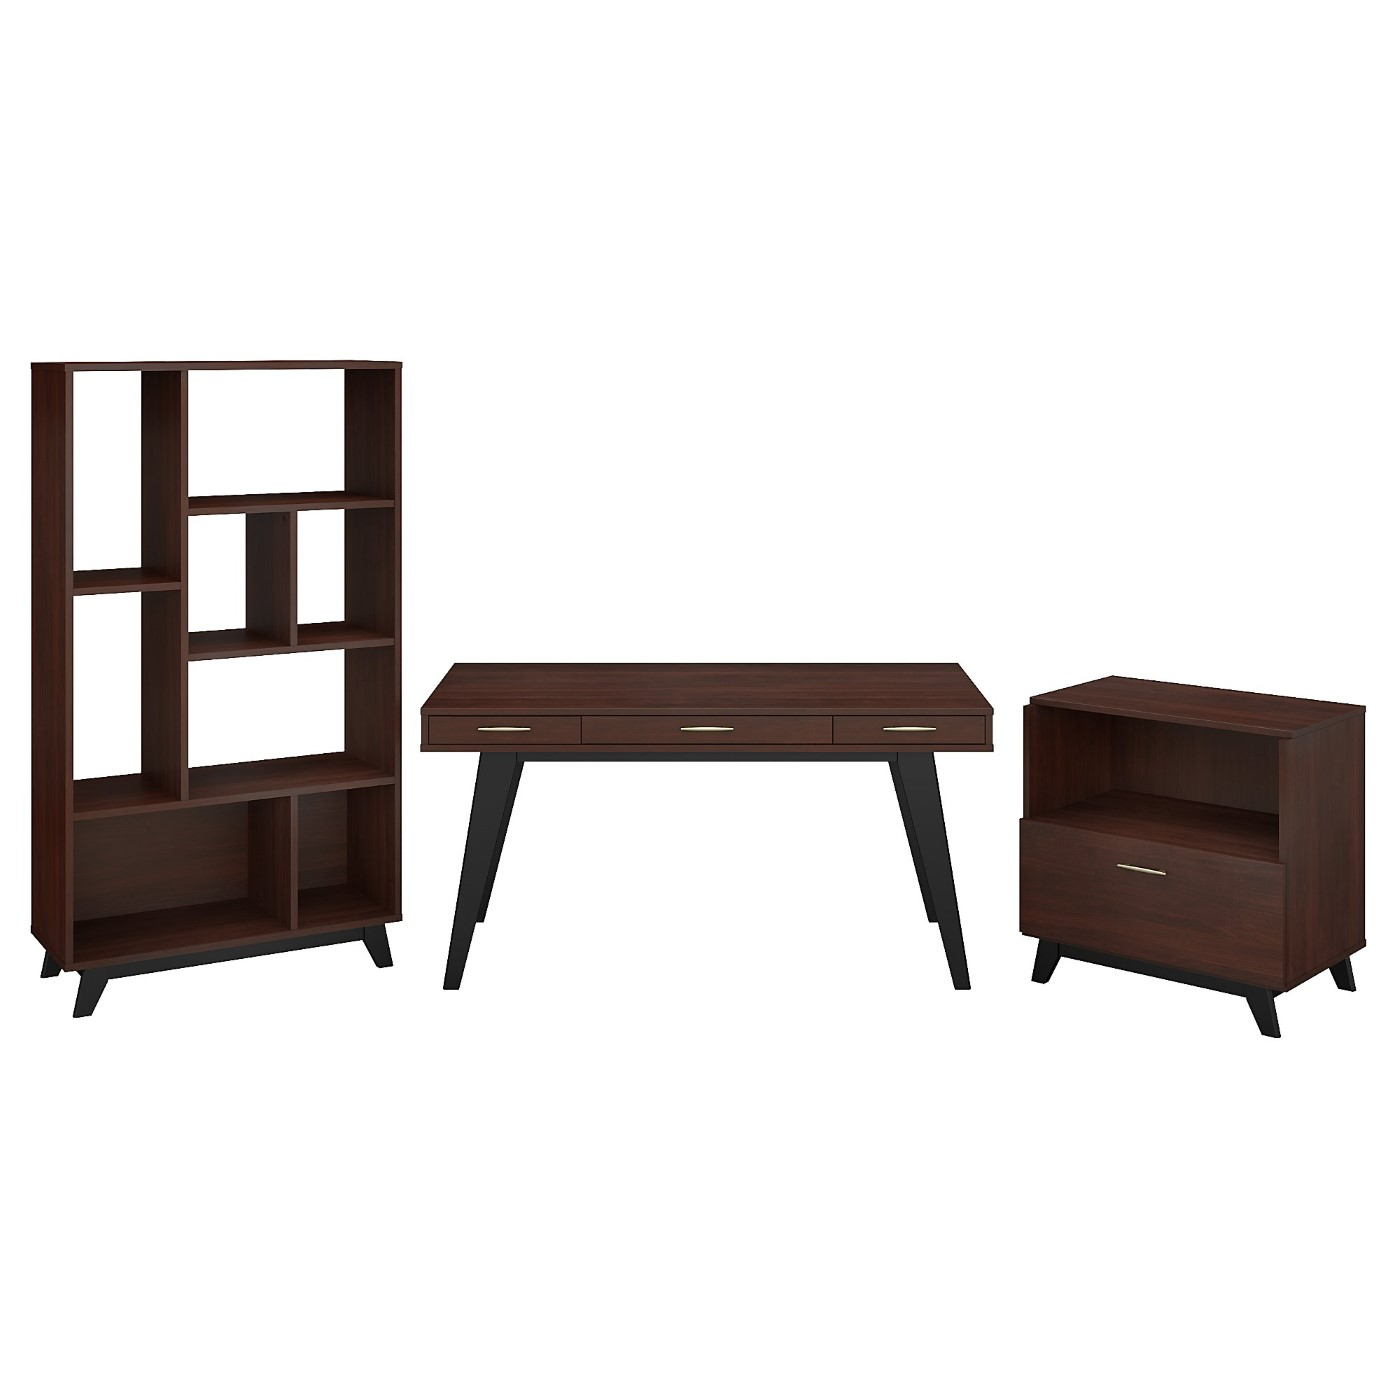 </b></font><b>The kathy ireland� Centura 60W x 30D Writing Desk with Lateral File Cabinet and Bookcase is Sustainable Eco Friendly Furniture. Includes Free Shipping! 30H x 72L x 72W</b></font>  VIDEO BELOW. <p>RATING:&#11088;&#11088;&#11088;&#11088;&#11088;</b></font></b>